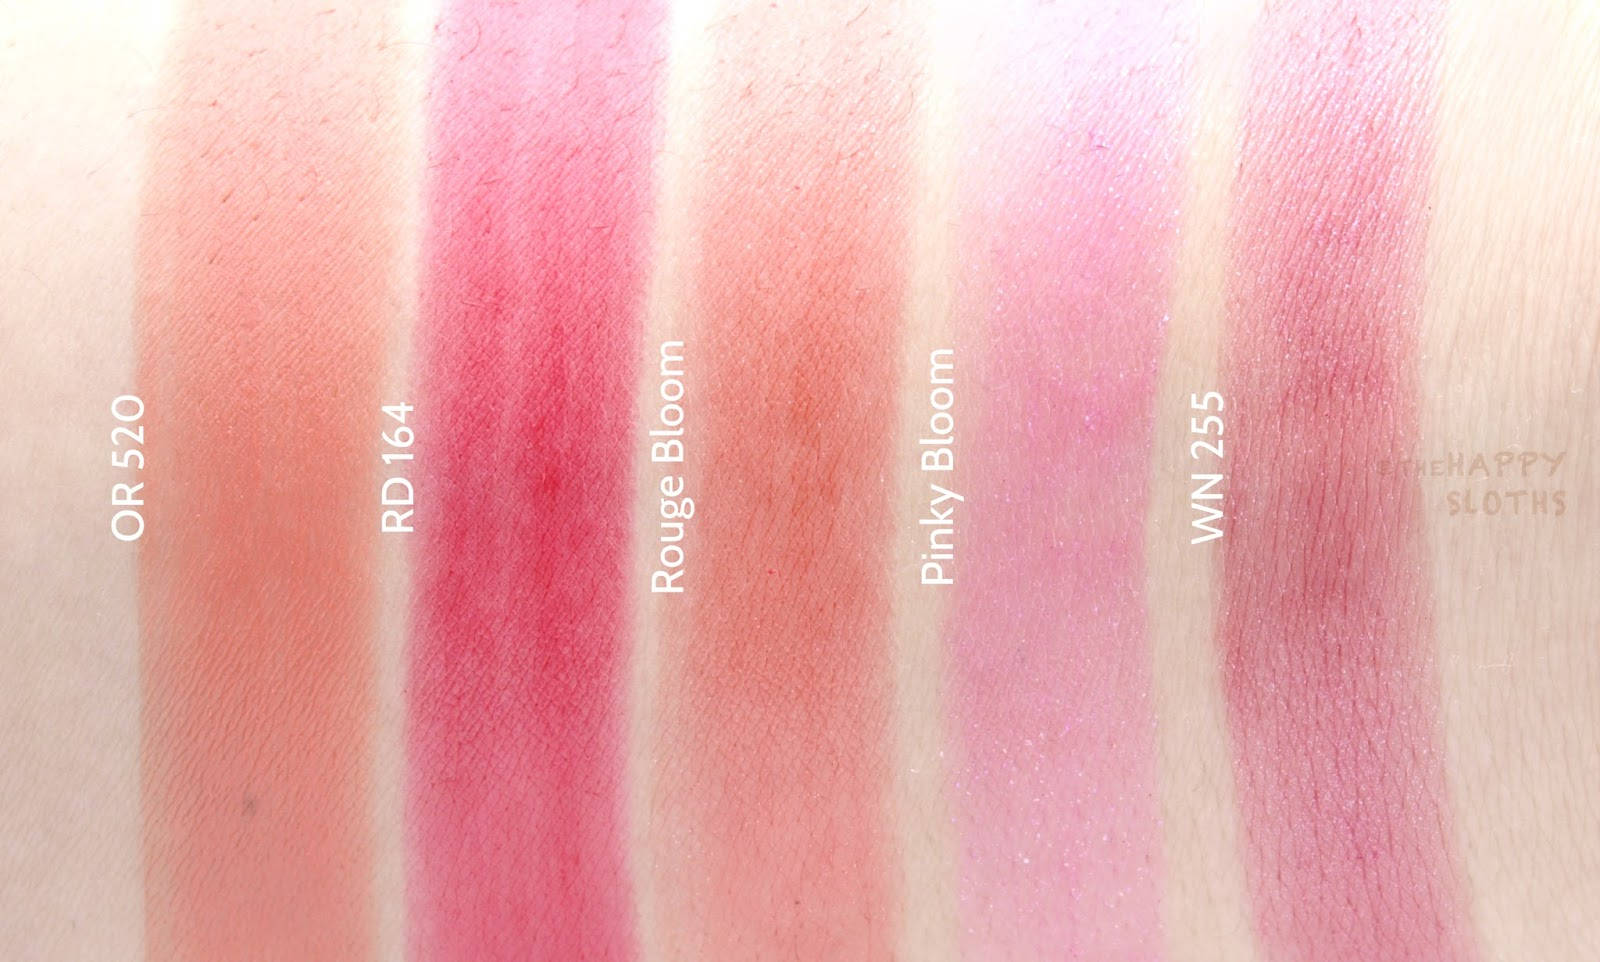 Shu Uemura Murakami Holiday 2016 Collection Review and Swatches